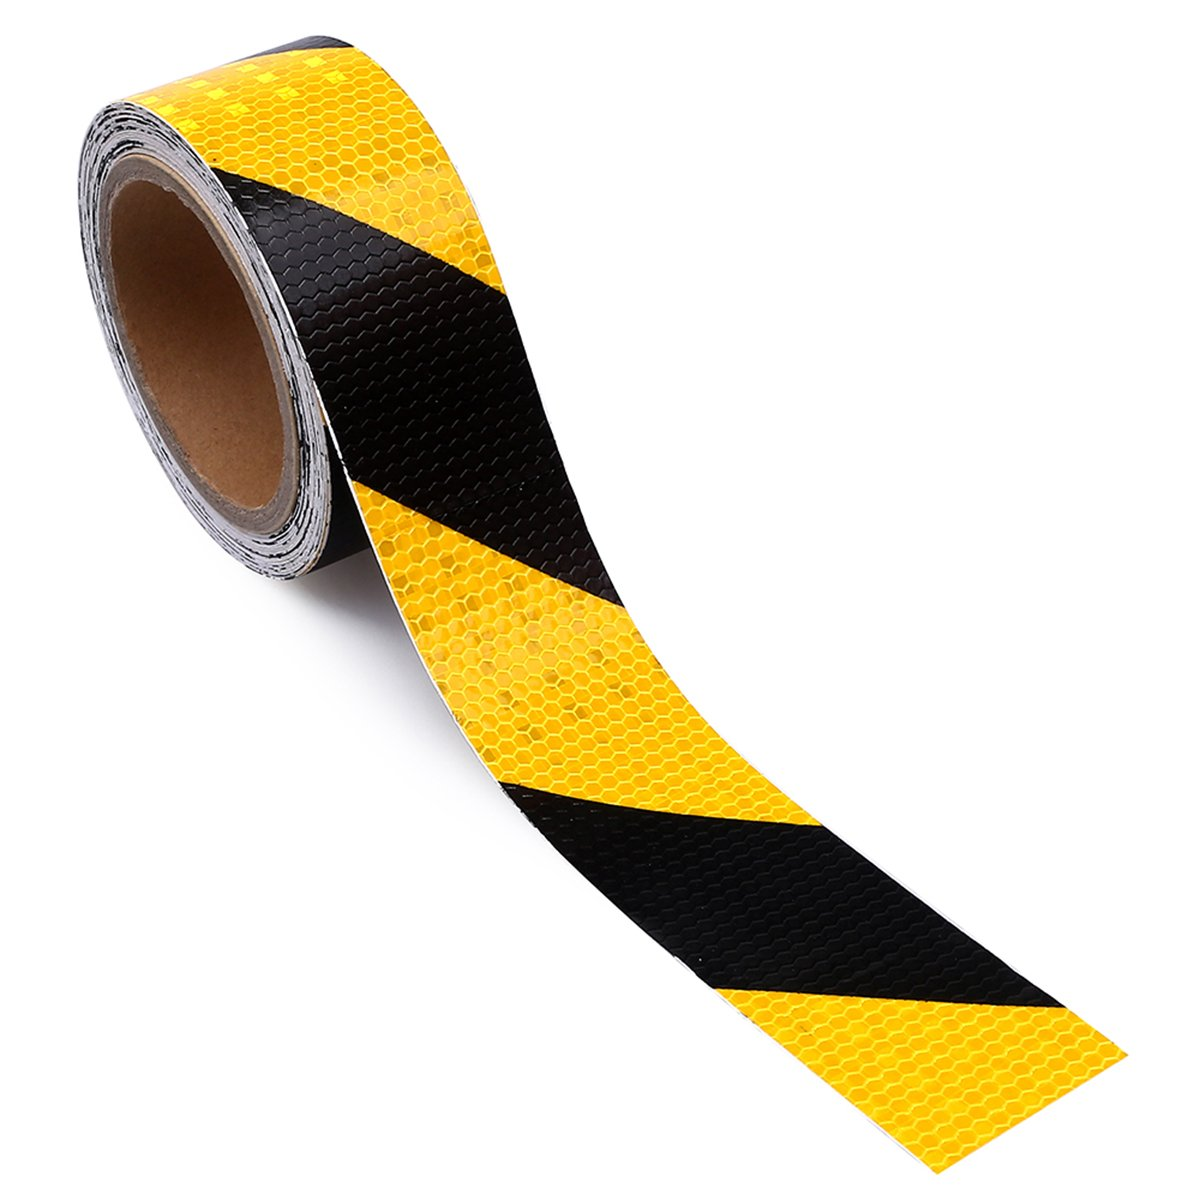 2'' X 30 Feet Reflective Safety Hazard Caution Tape Yellow And Black